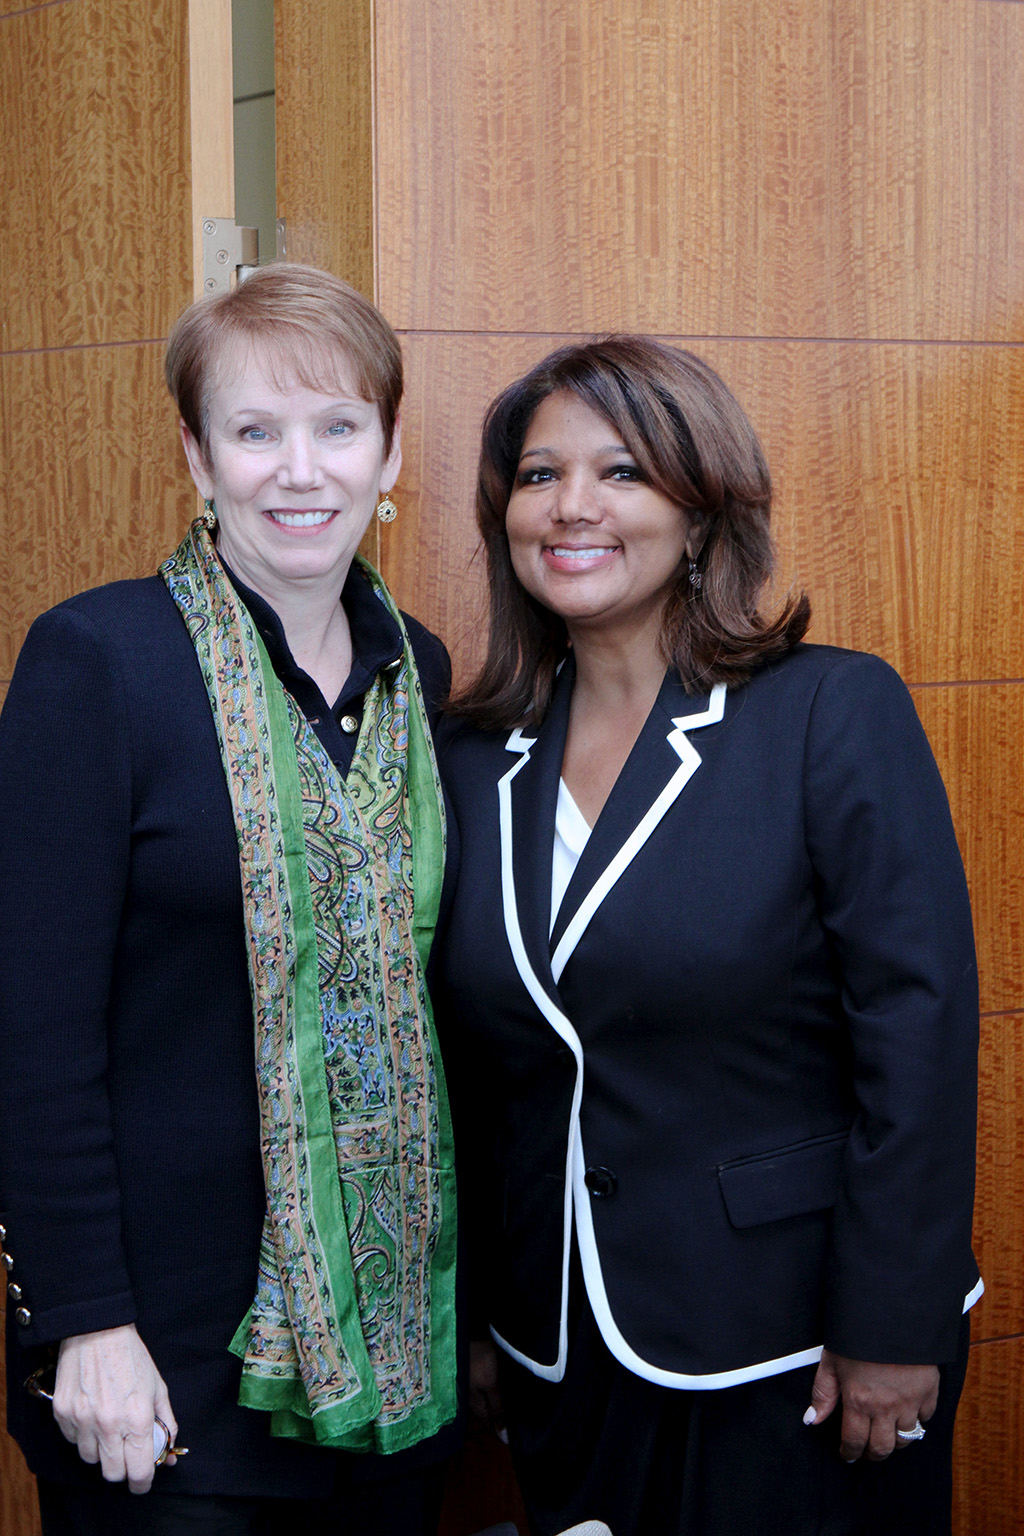 (L to R) Patricia Glaser Shea (CEO, YWCA of Nashville & Middle Tennessee) and Jacky Akbari (co-founder, board chairwoman of NOW Diversity).